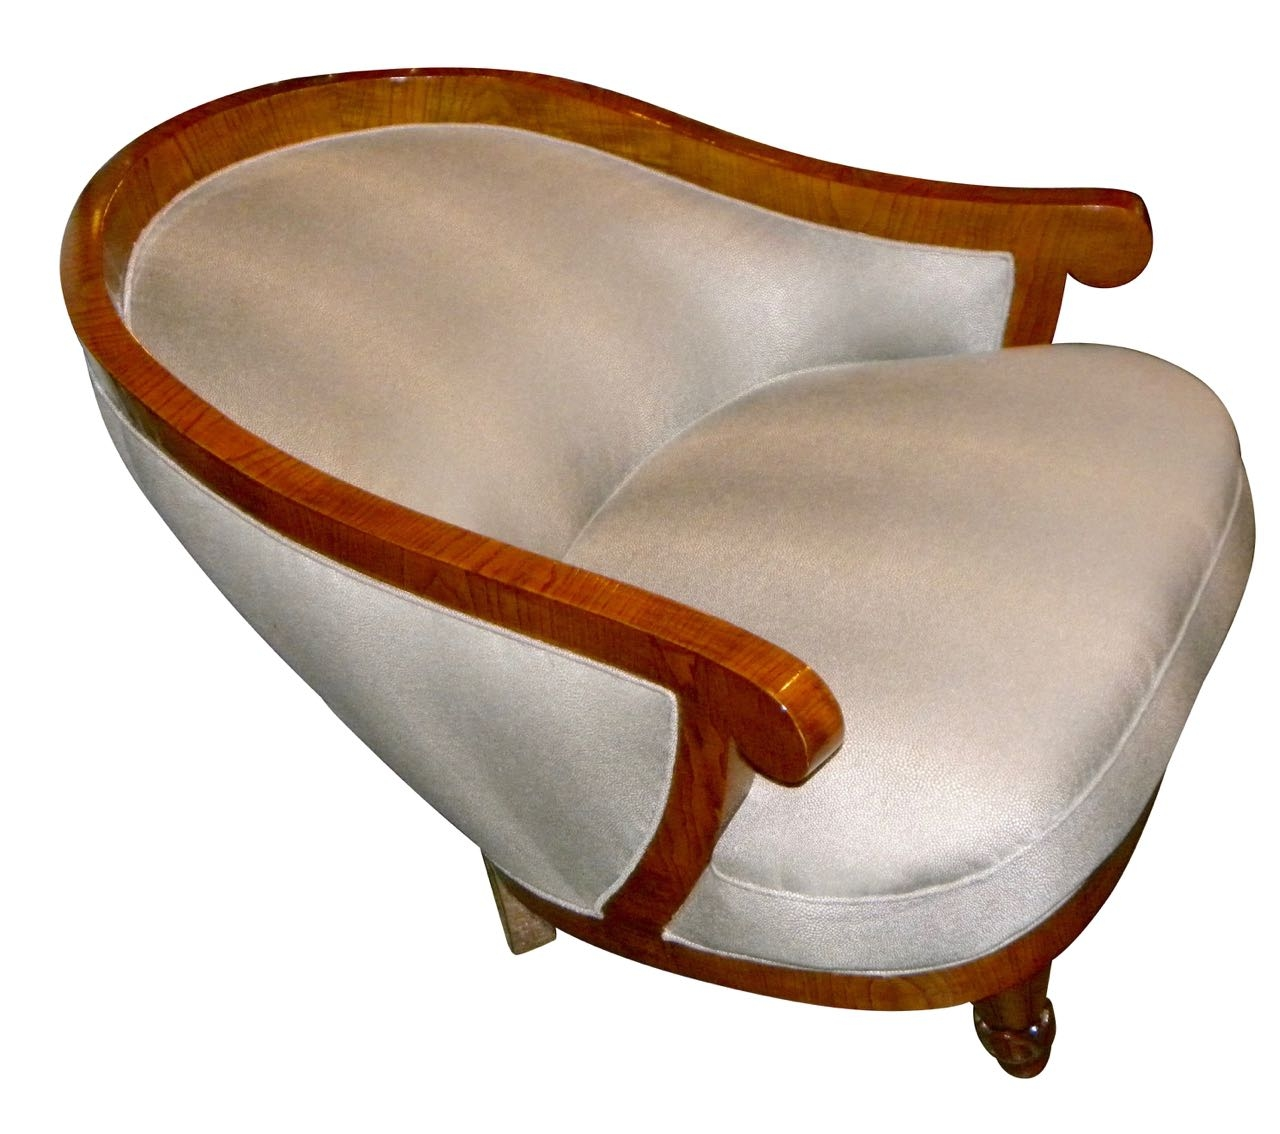 Art Deco Furniture Sold Seating Items Art Deco Collection Regarding Art Deco Sofa And Chairs (Image 6 of 15)